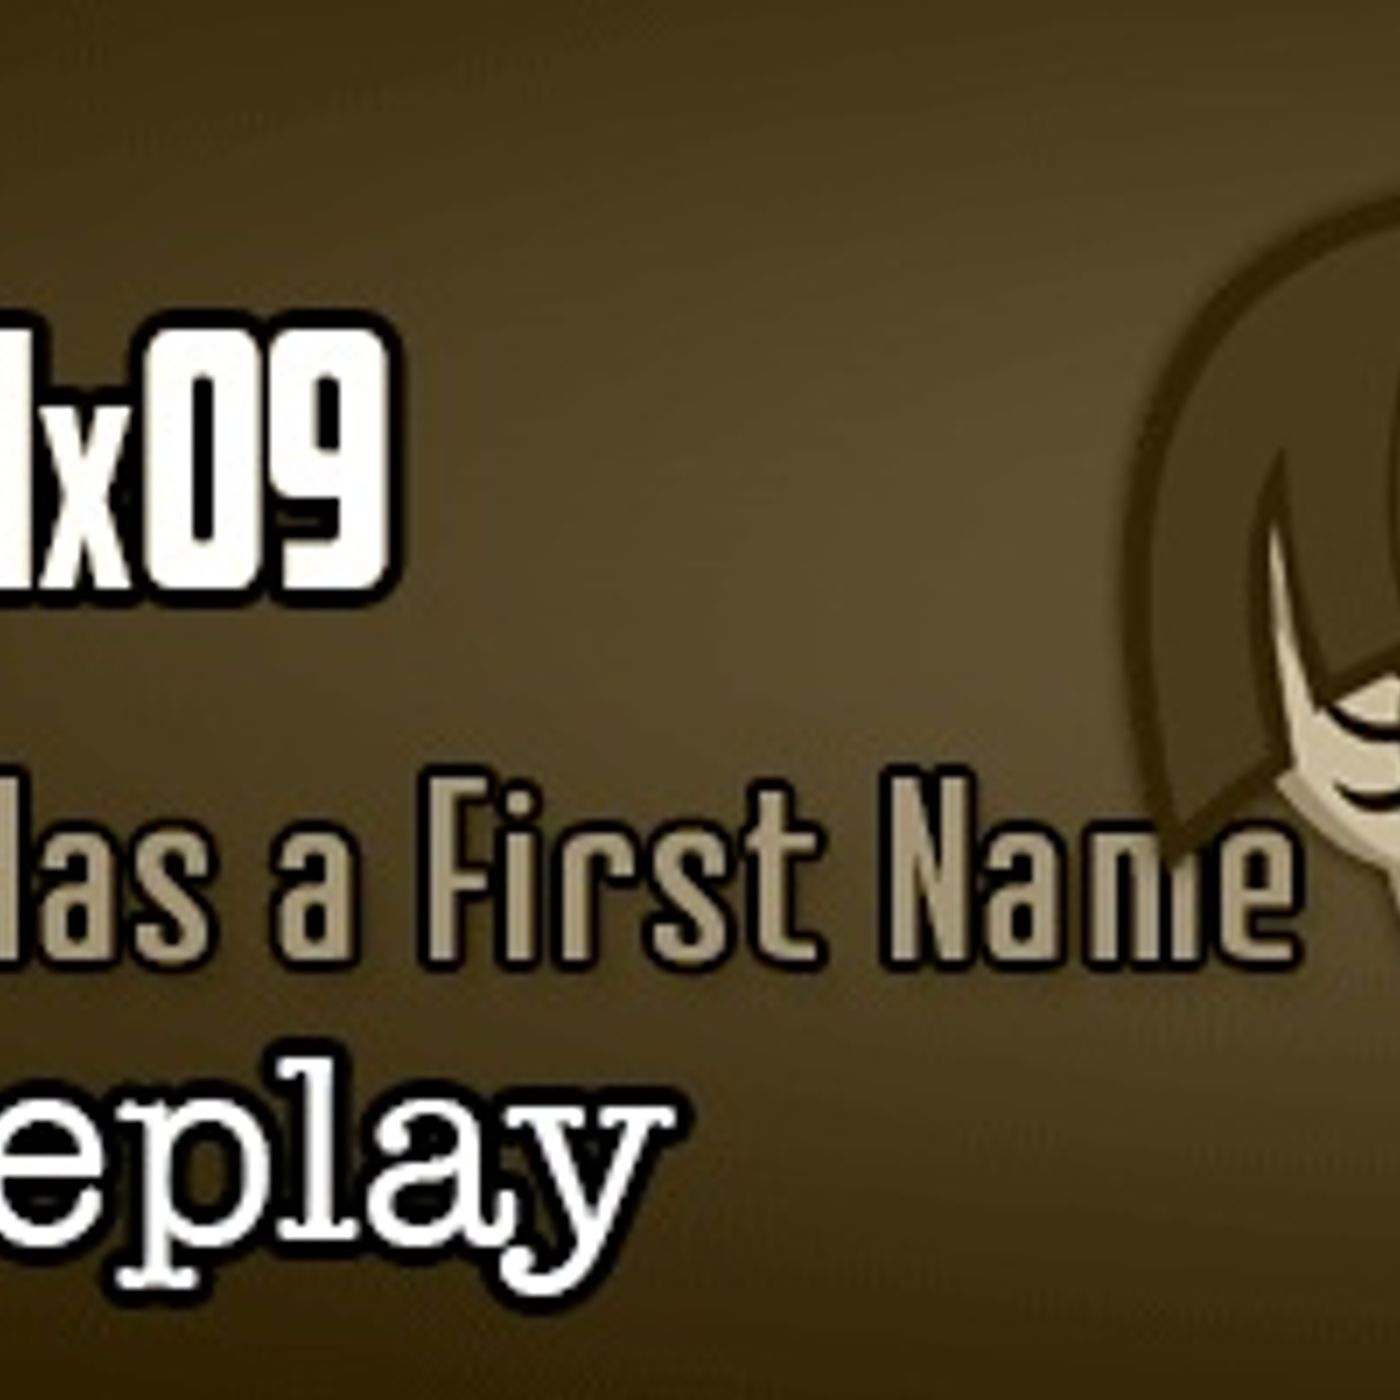 SMC Replay 1x09: Our Brony Has a First Name (10/23/13)